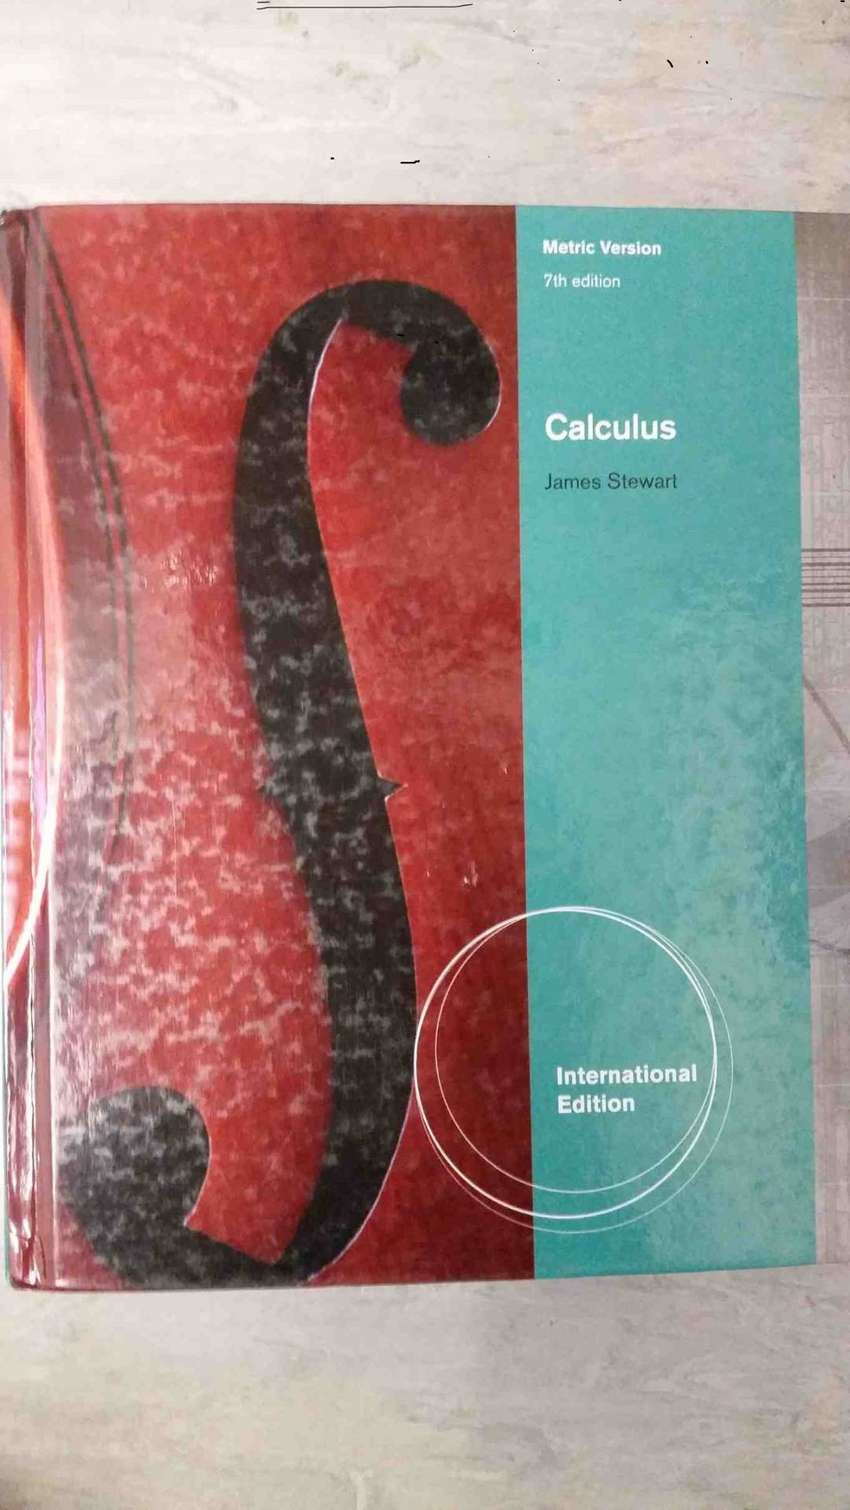 Calculus Metric Version 7th edition - James Stewart